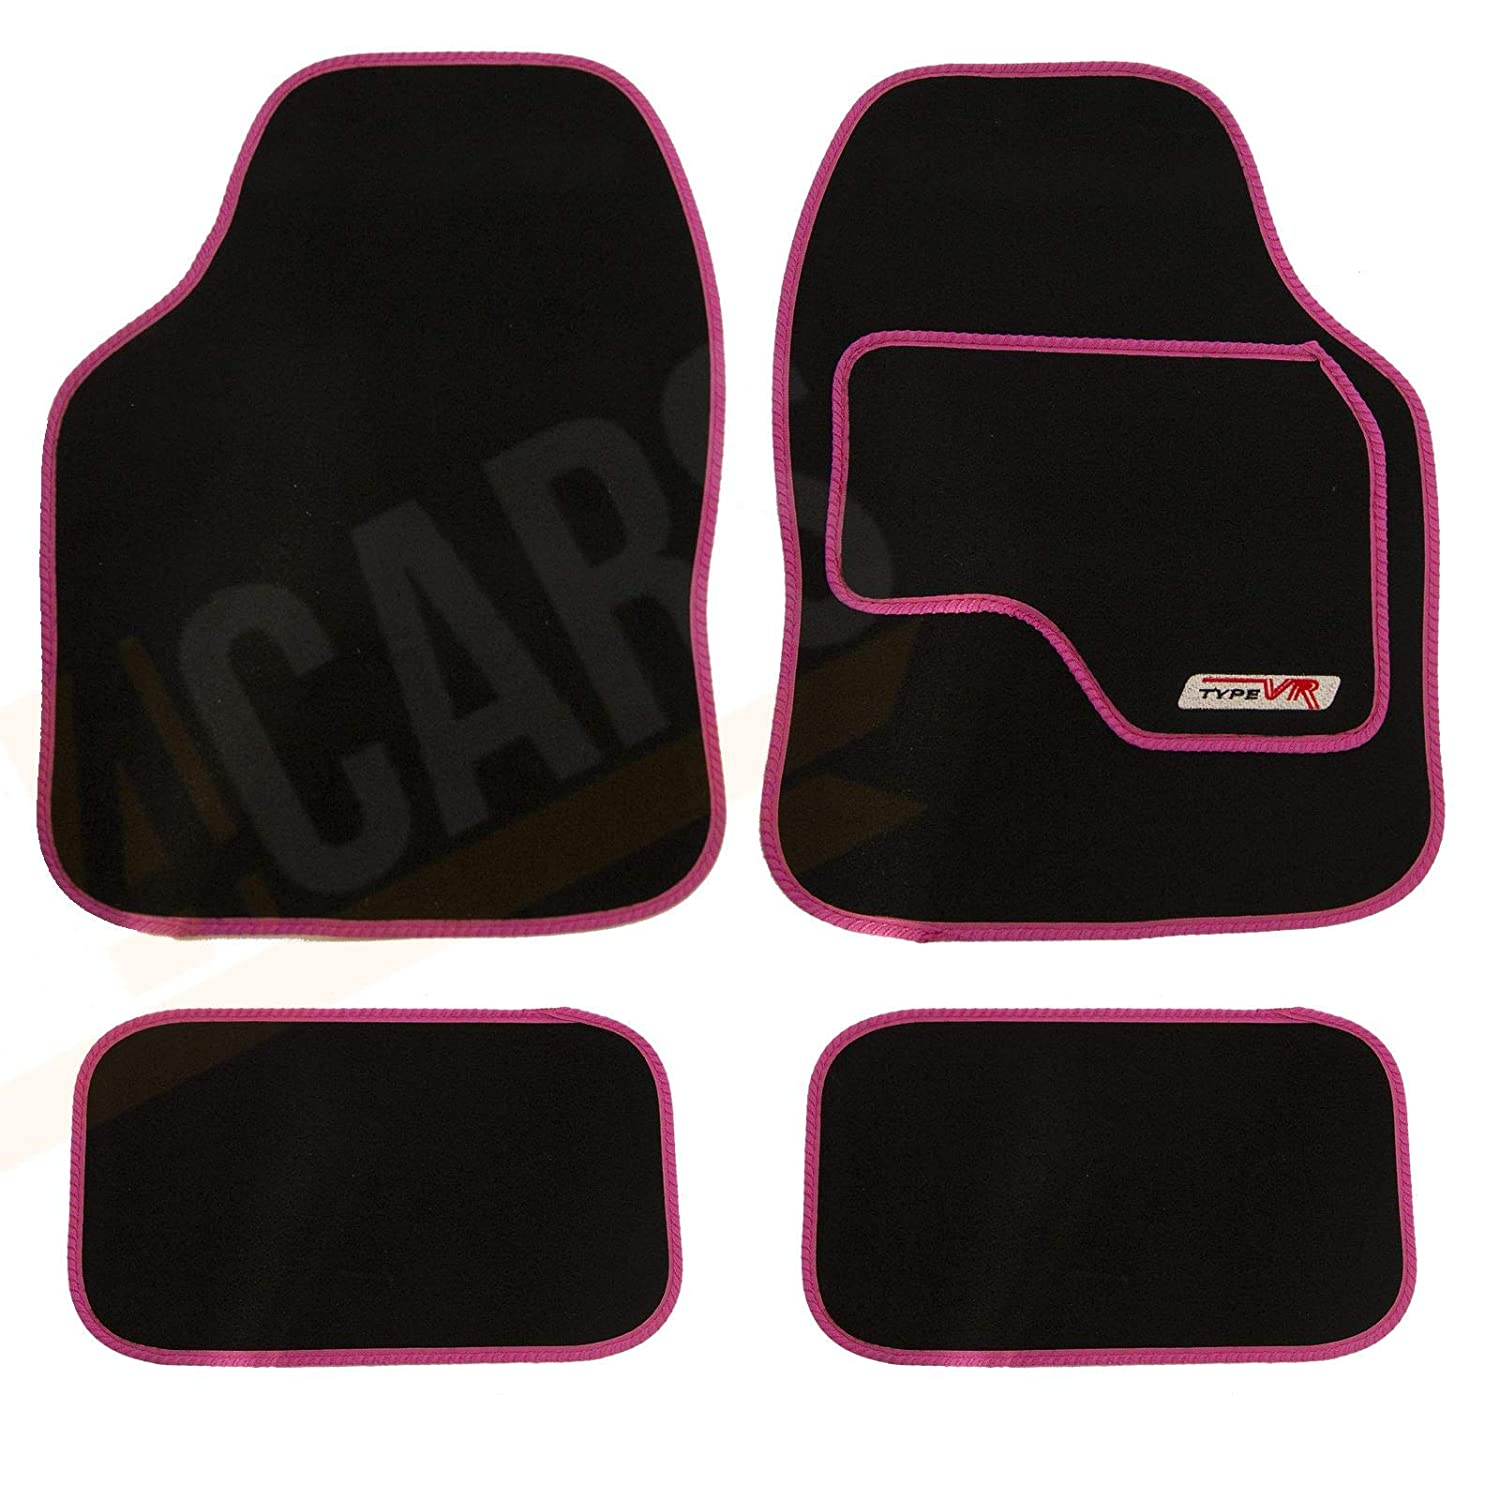 PEUGEOT 206 BLACK /& RED TRIM CAR FLOOR MATS